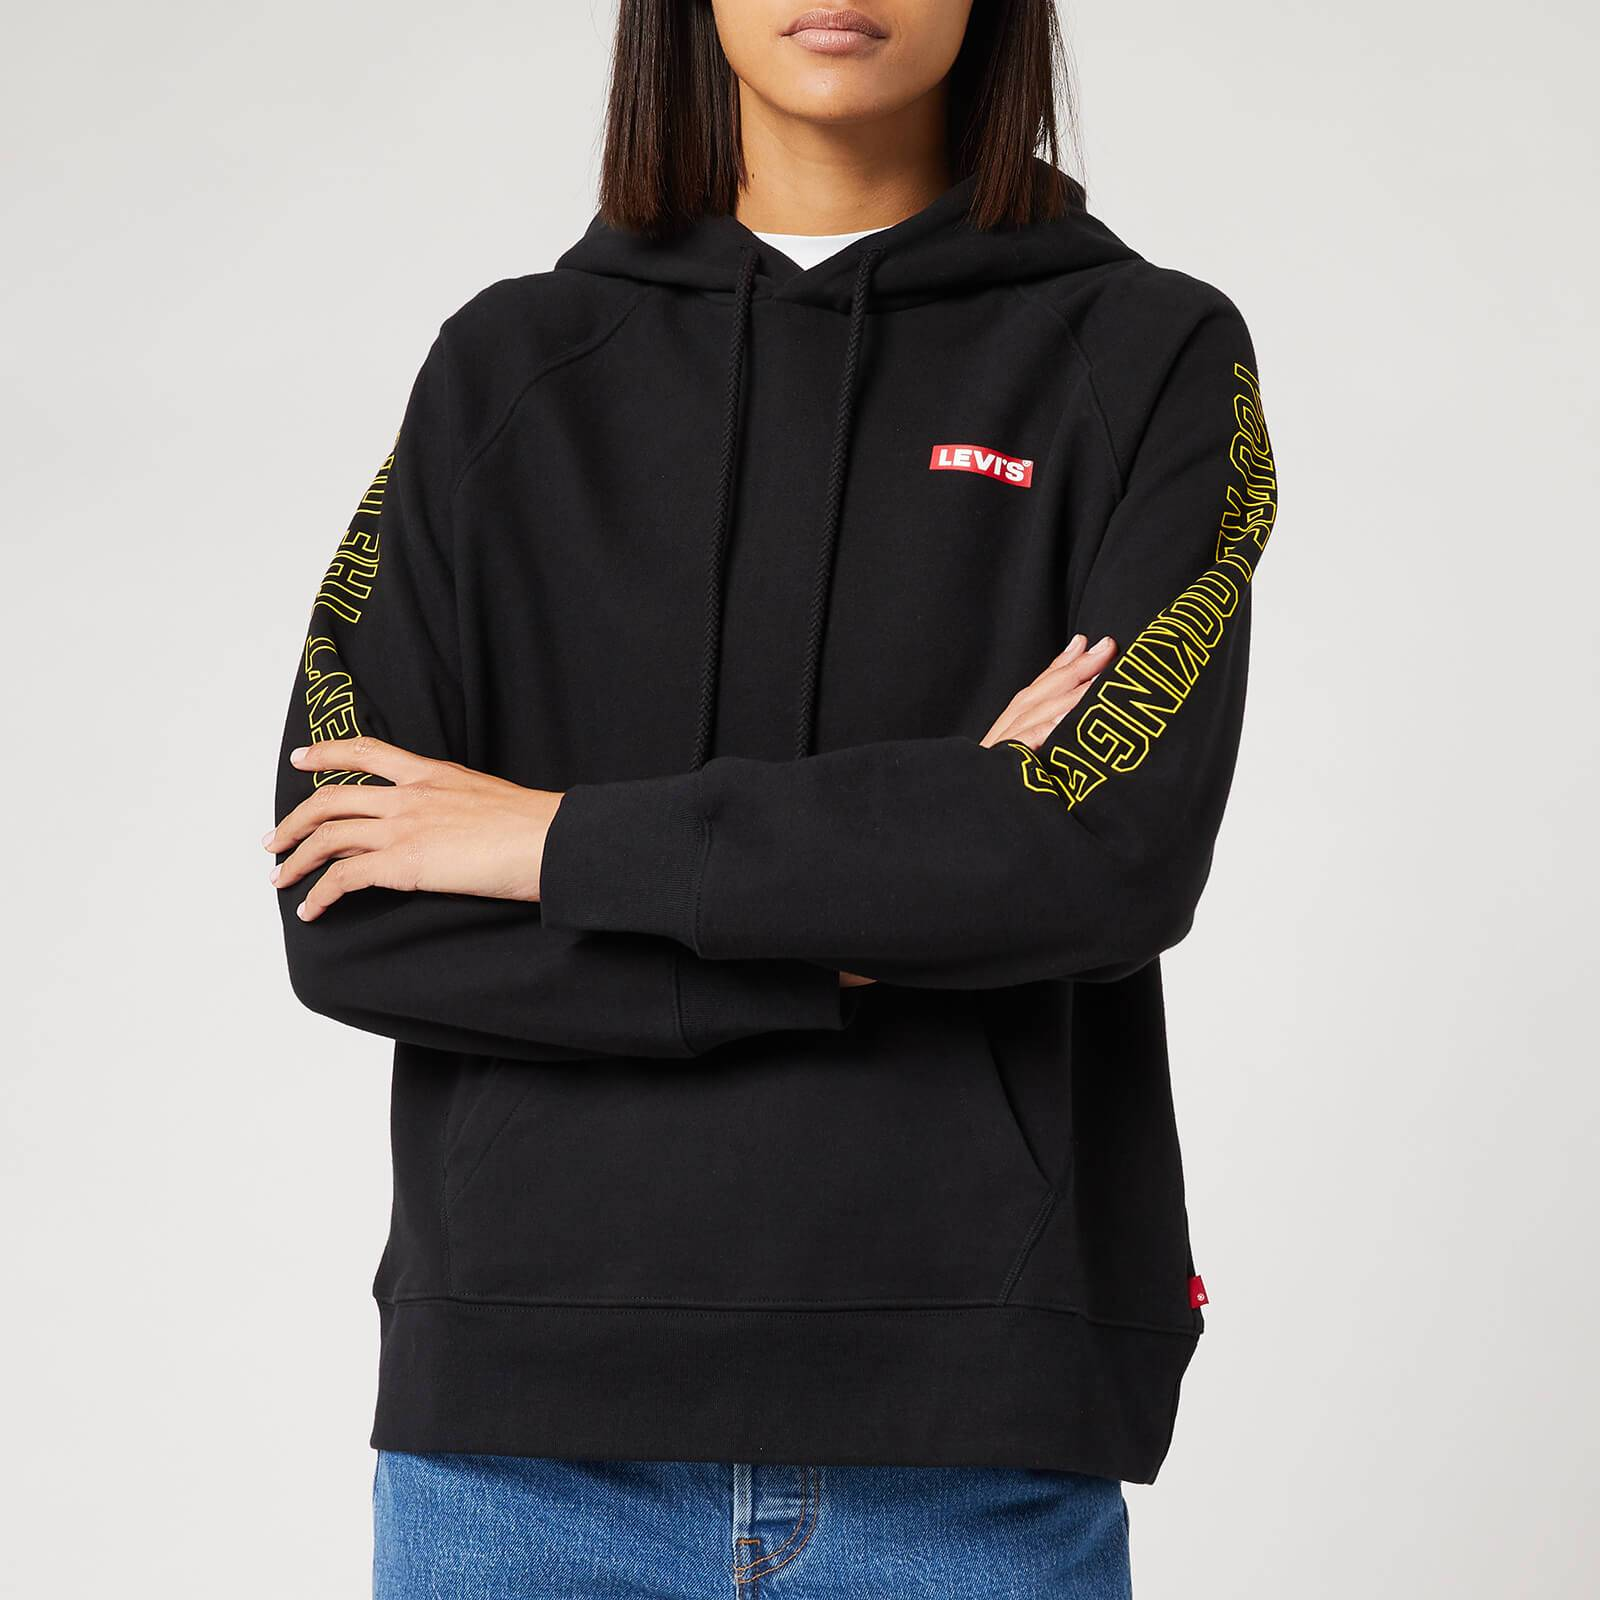 Levi's Star Wars Women's Graphic Sport Hoodie - Androids Black - M